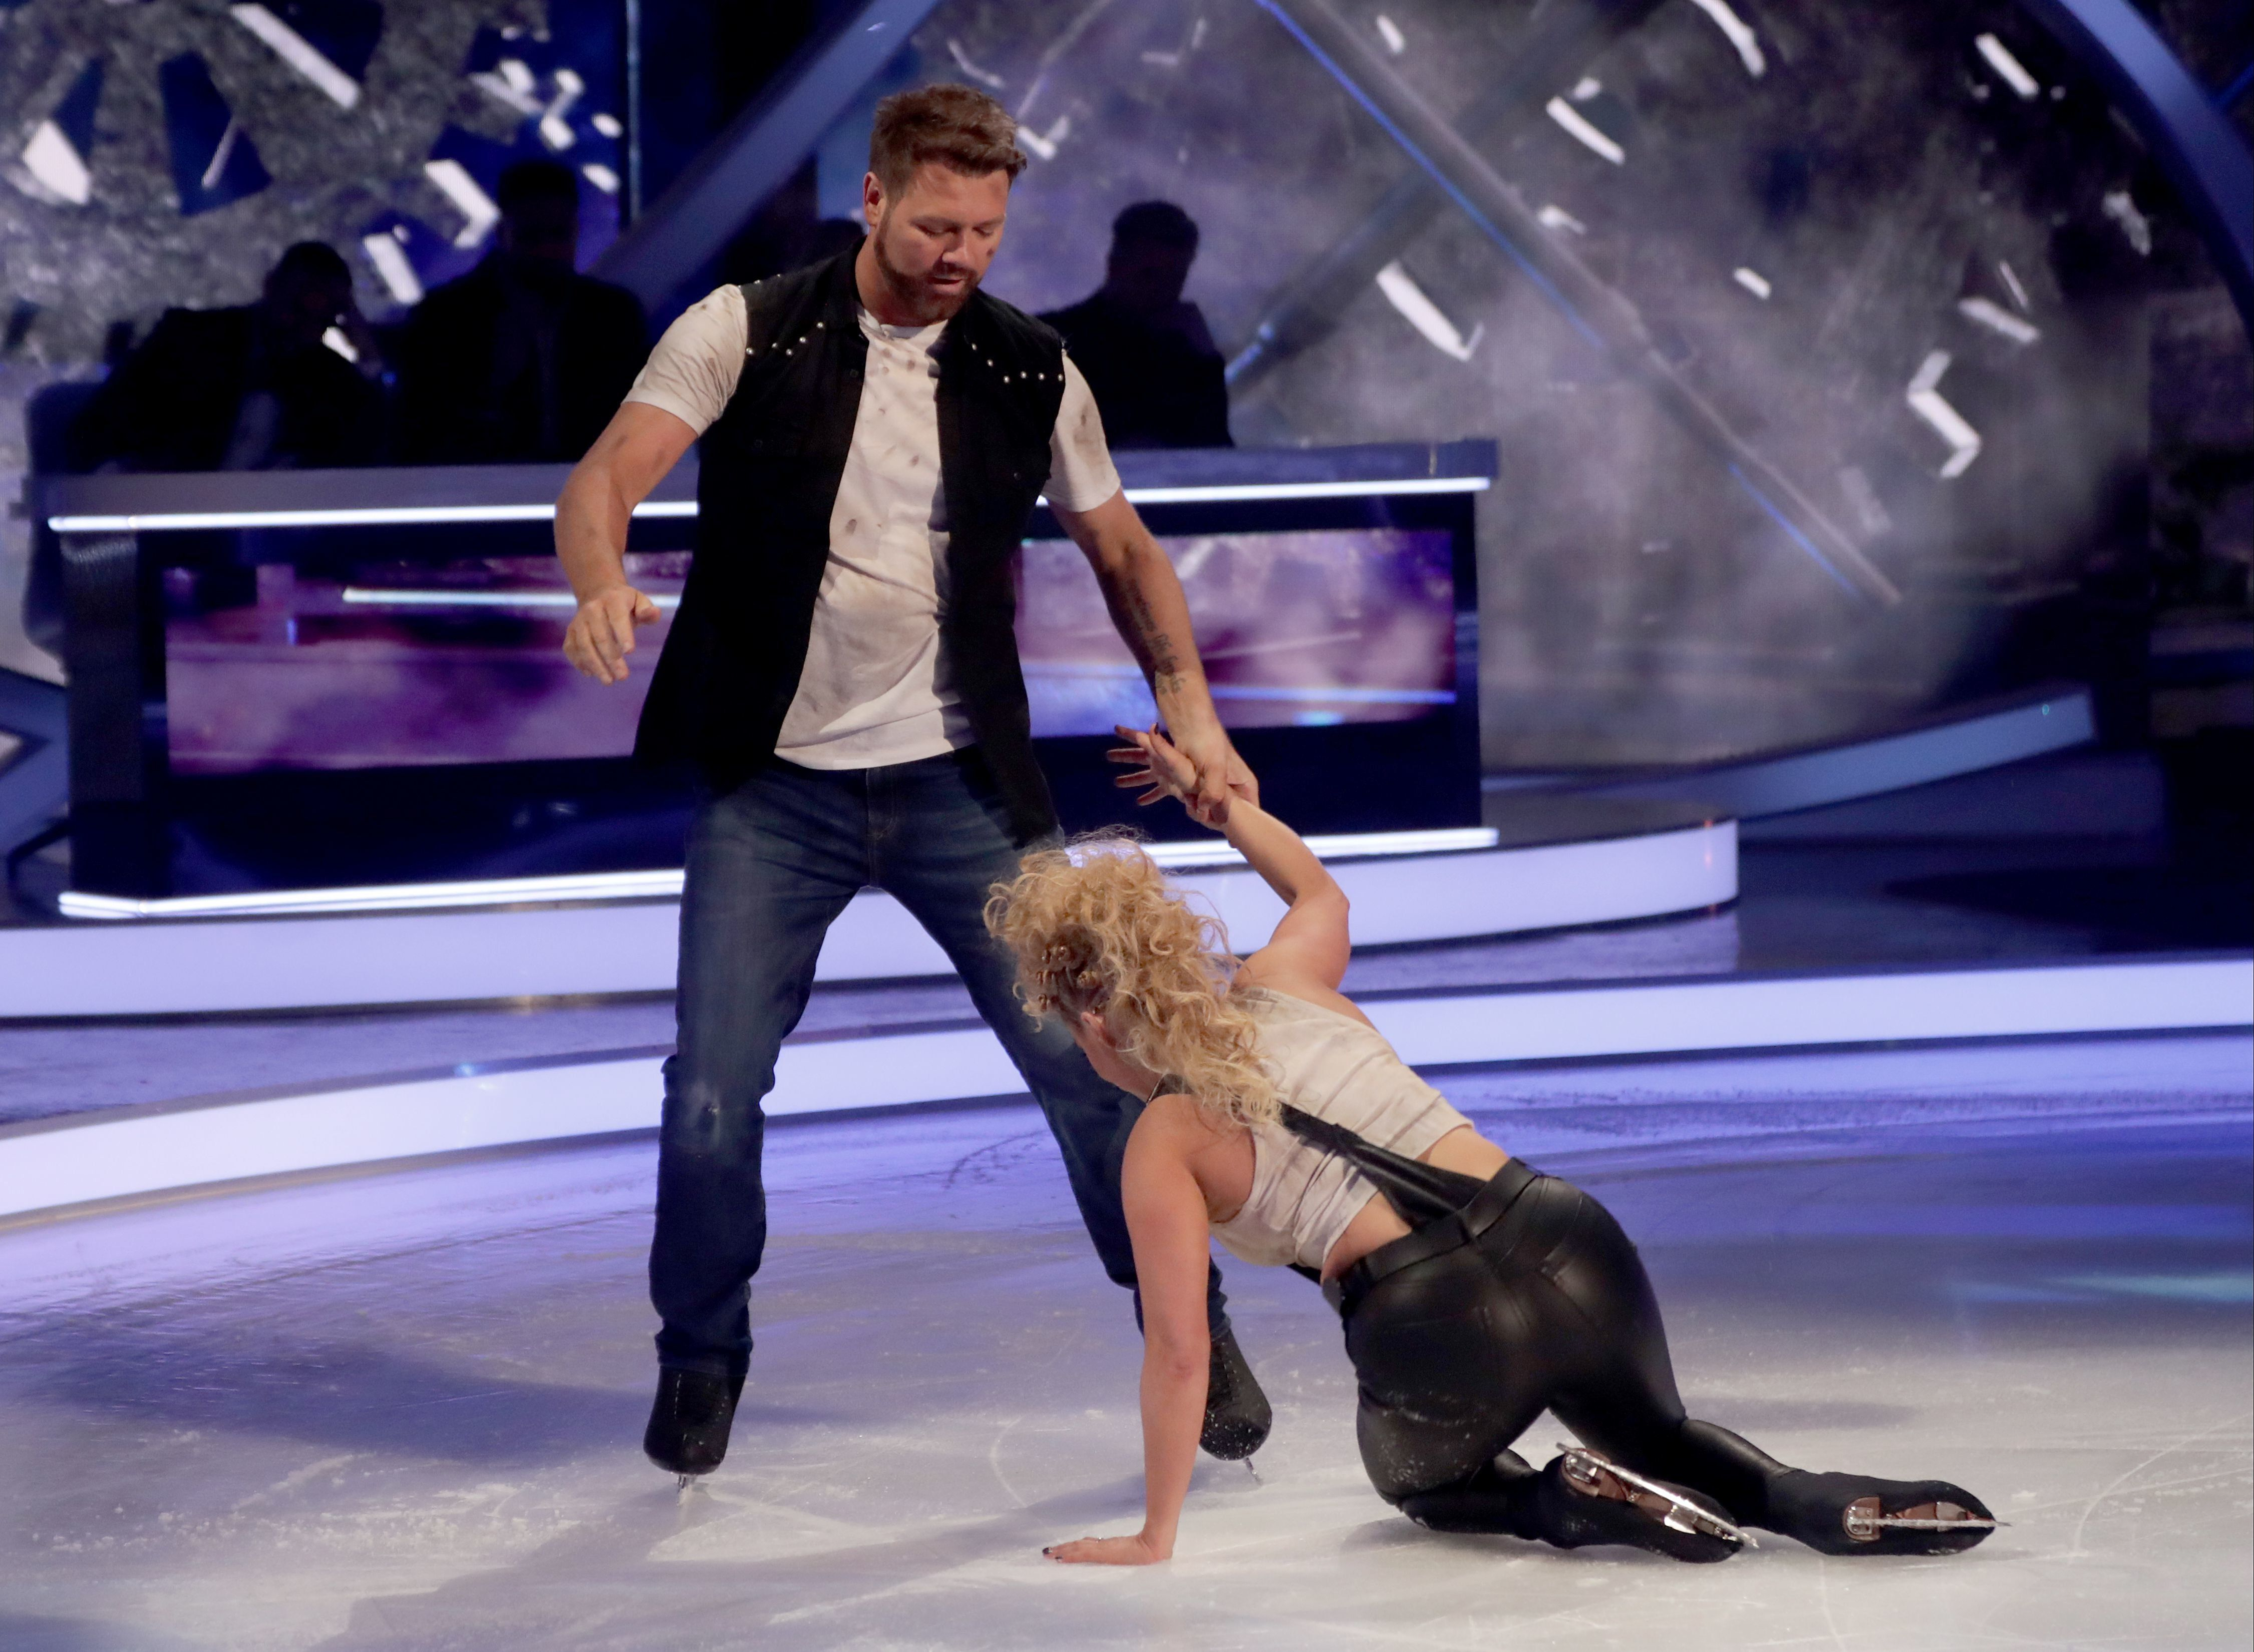 Brian McFadden Drops Partner In Botched Dancing On Ice